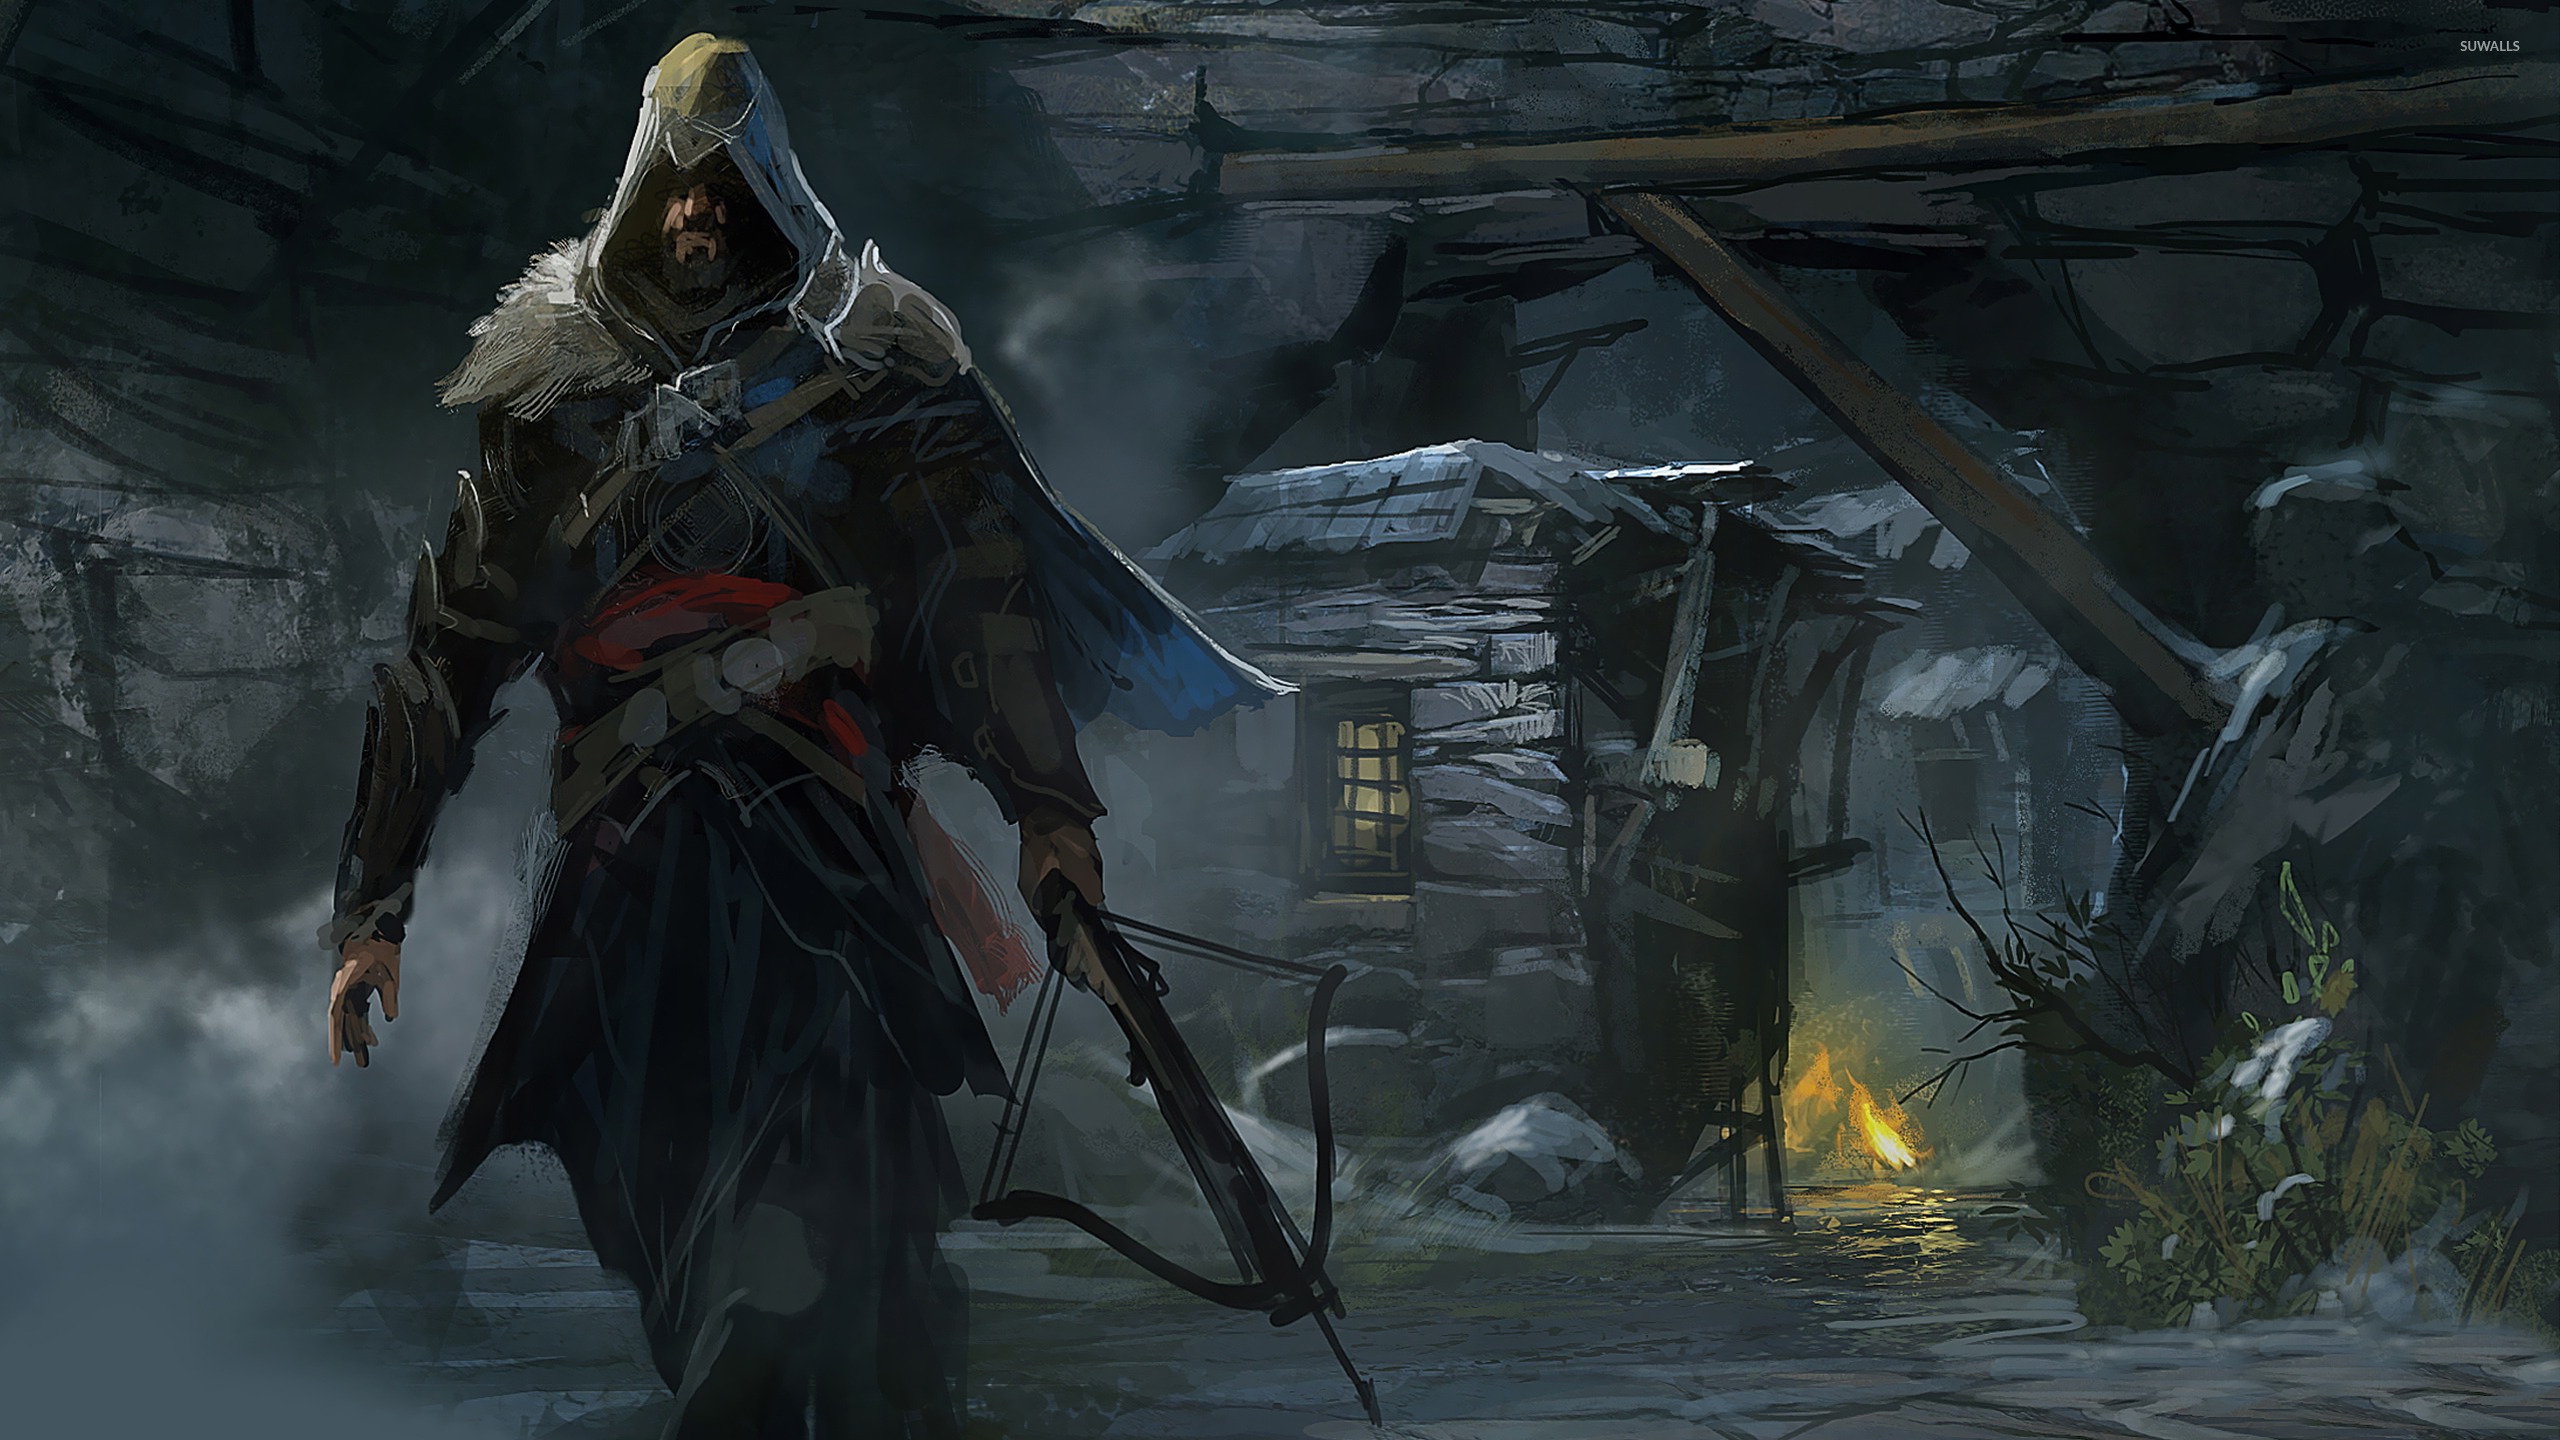 Assassin S Creed Revelations 11 Wallpaper Game Wallpapers 18858